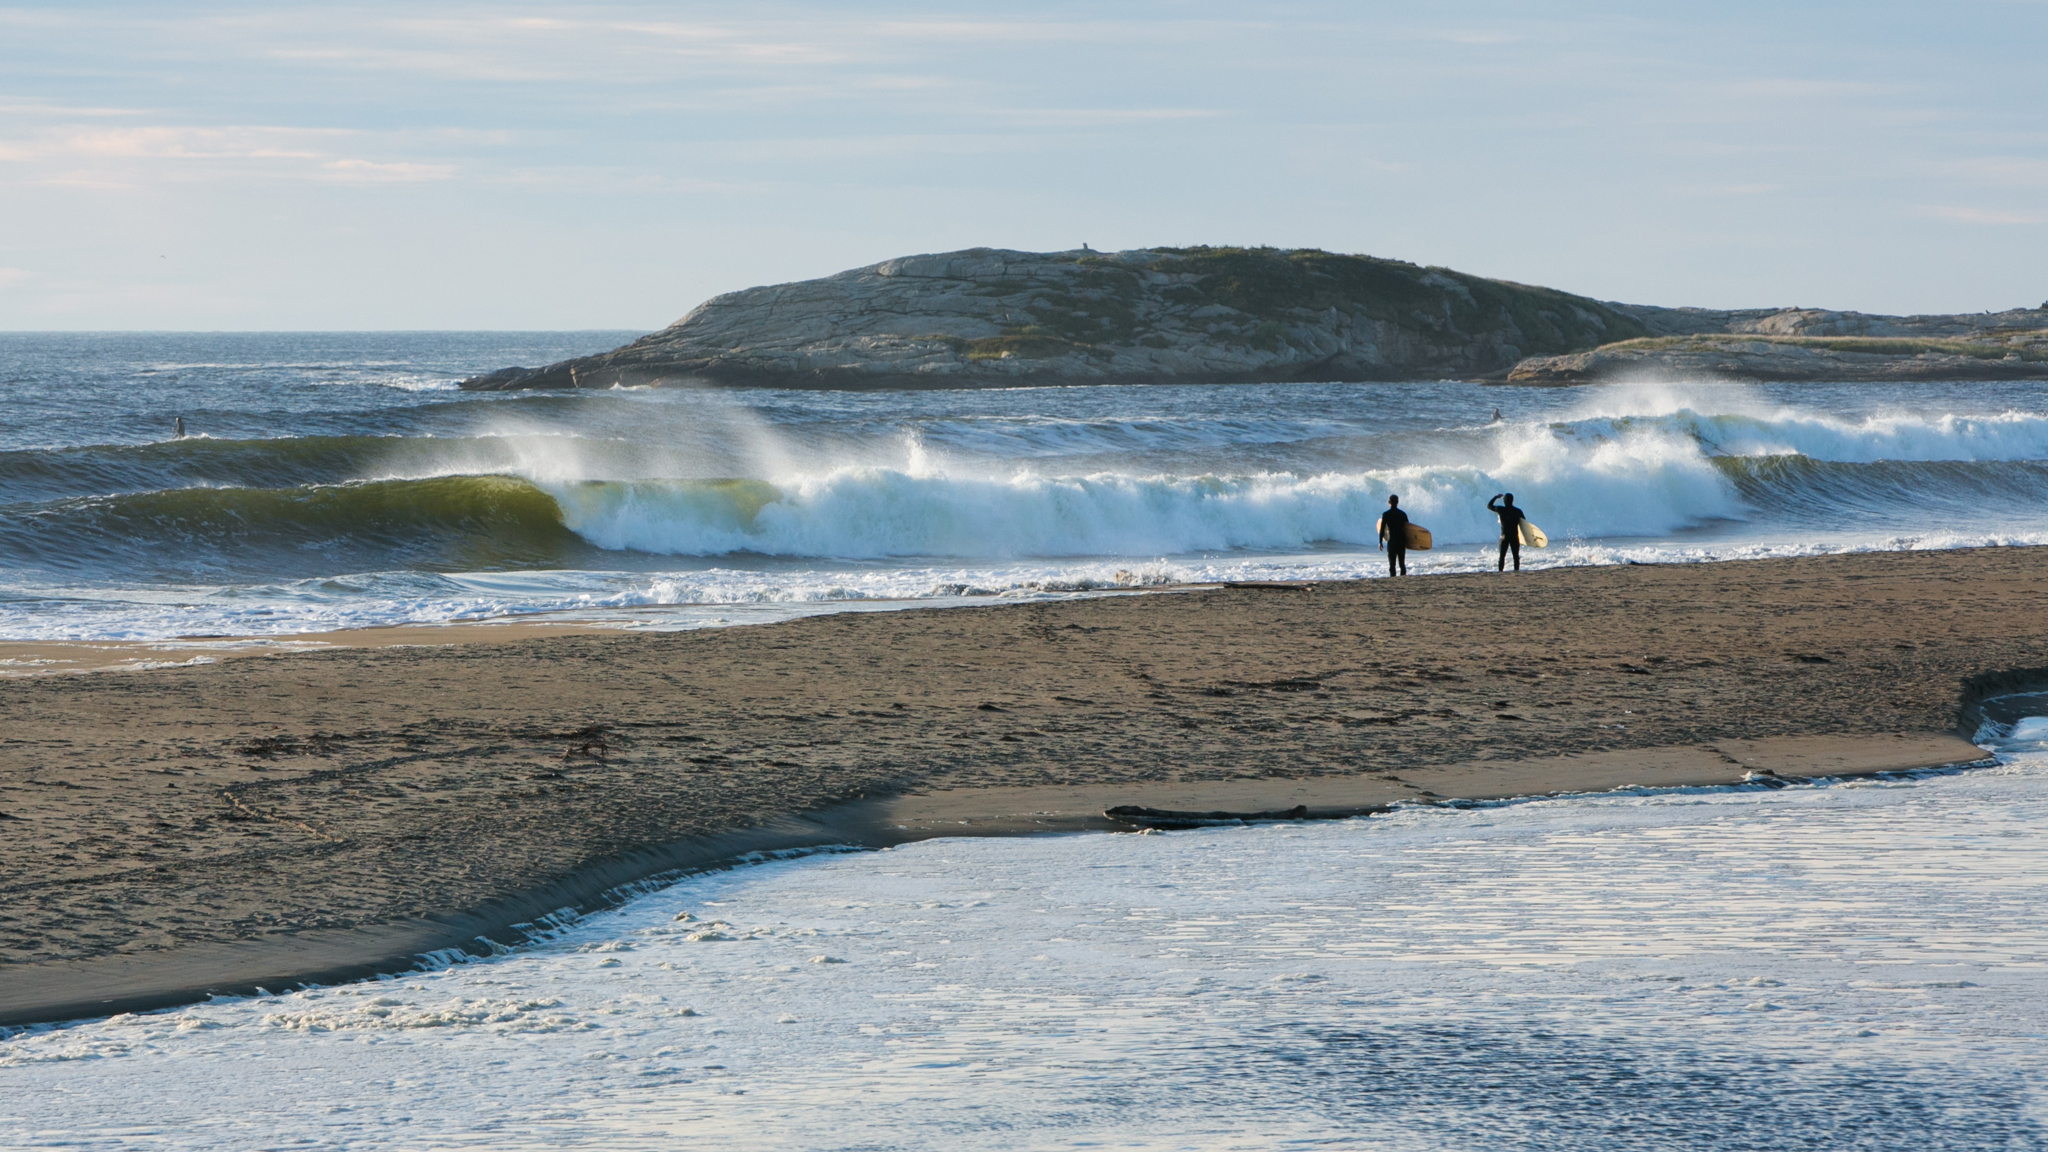 Of course the East Coast has surf, you just have to know where to look. With miles of exposed coastline, Maine offers the adventurous surfer a chance to break out of the norm, dip their toes in some really cold water, and potentially score perfect surf with nobody out.